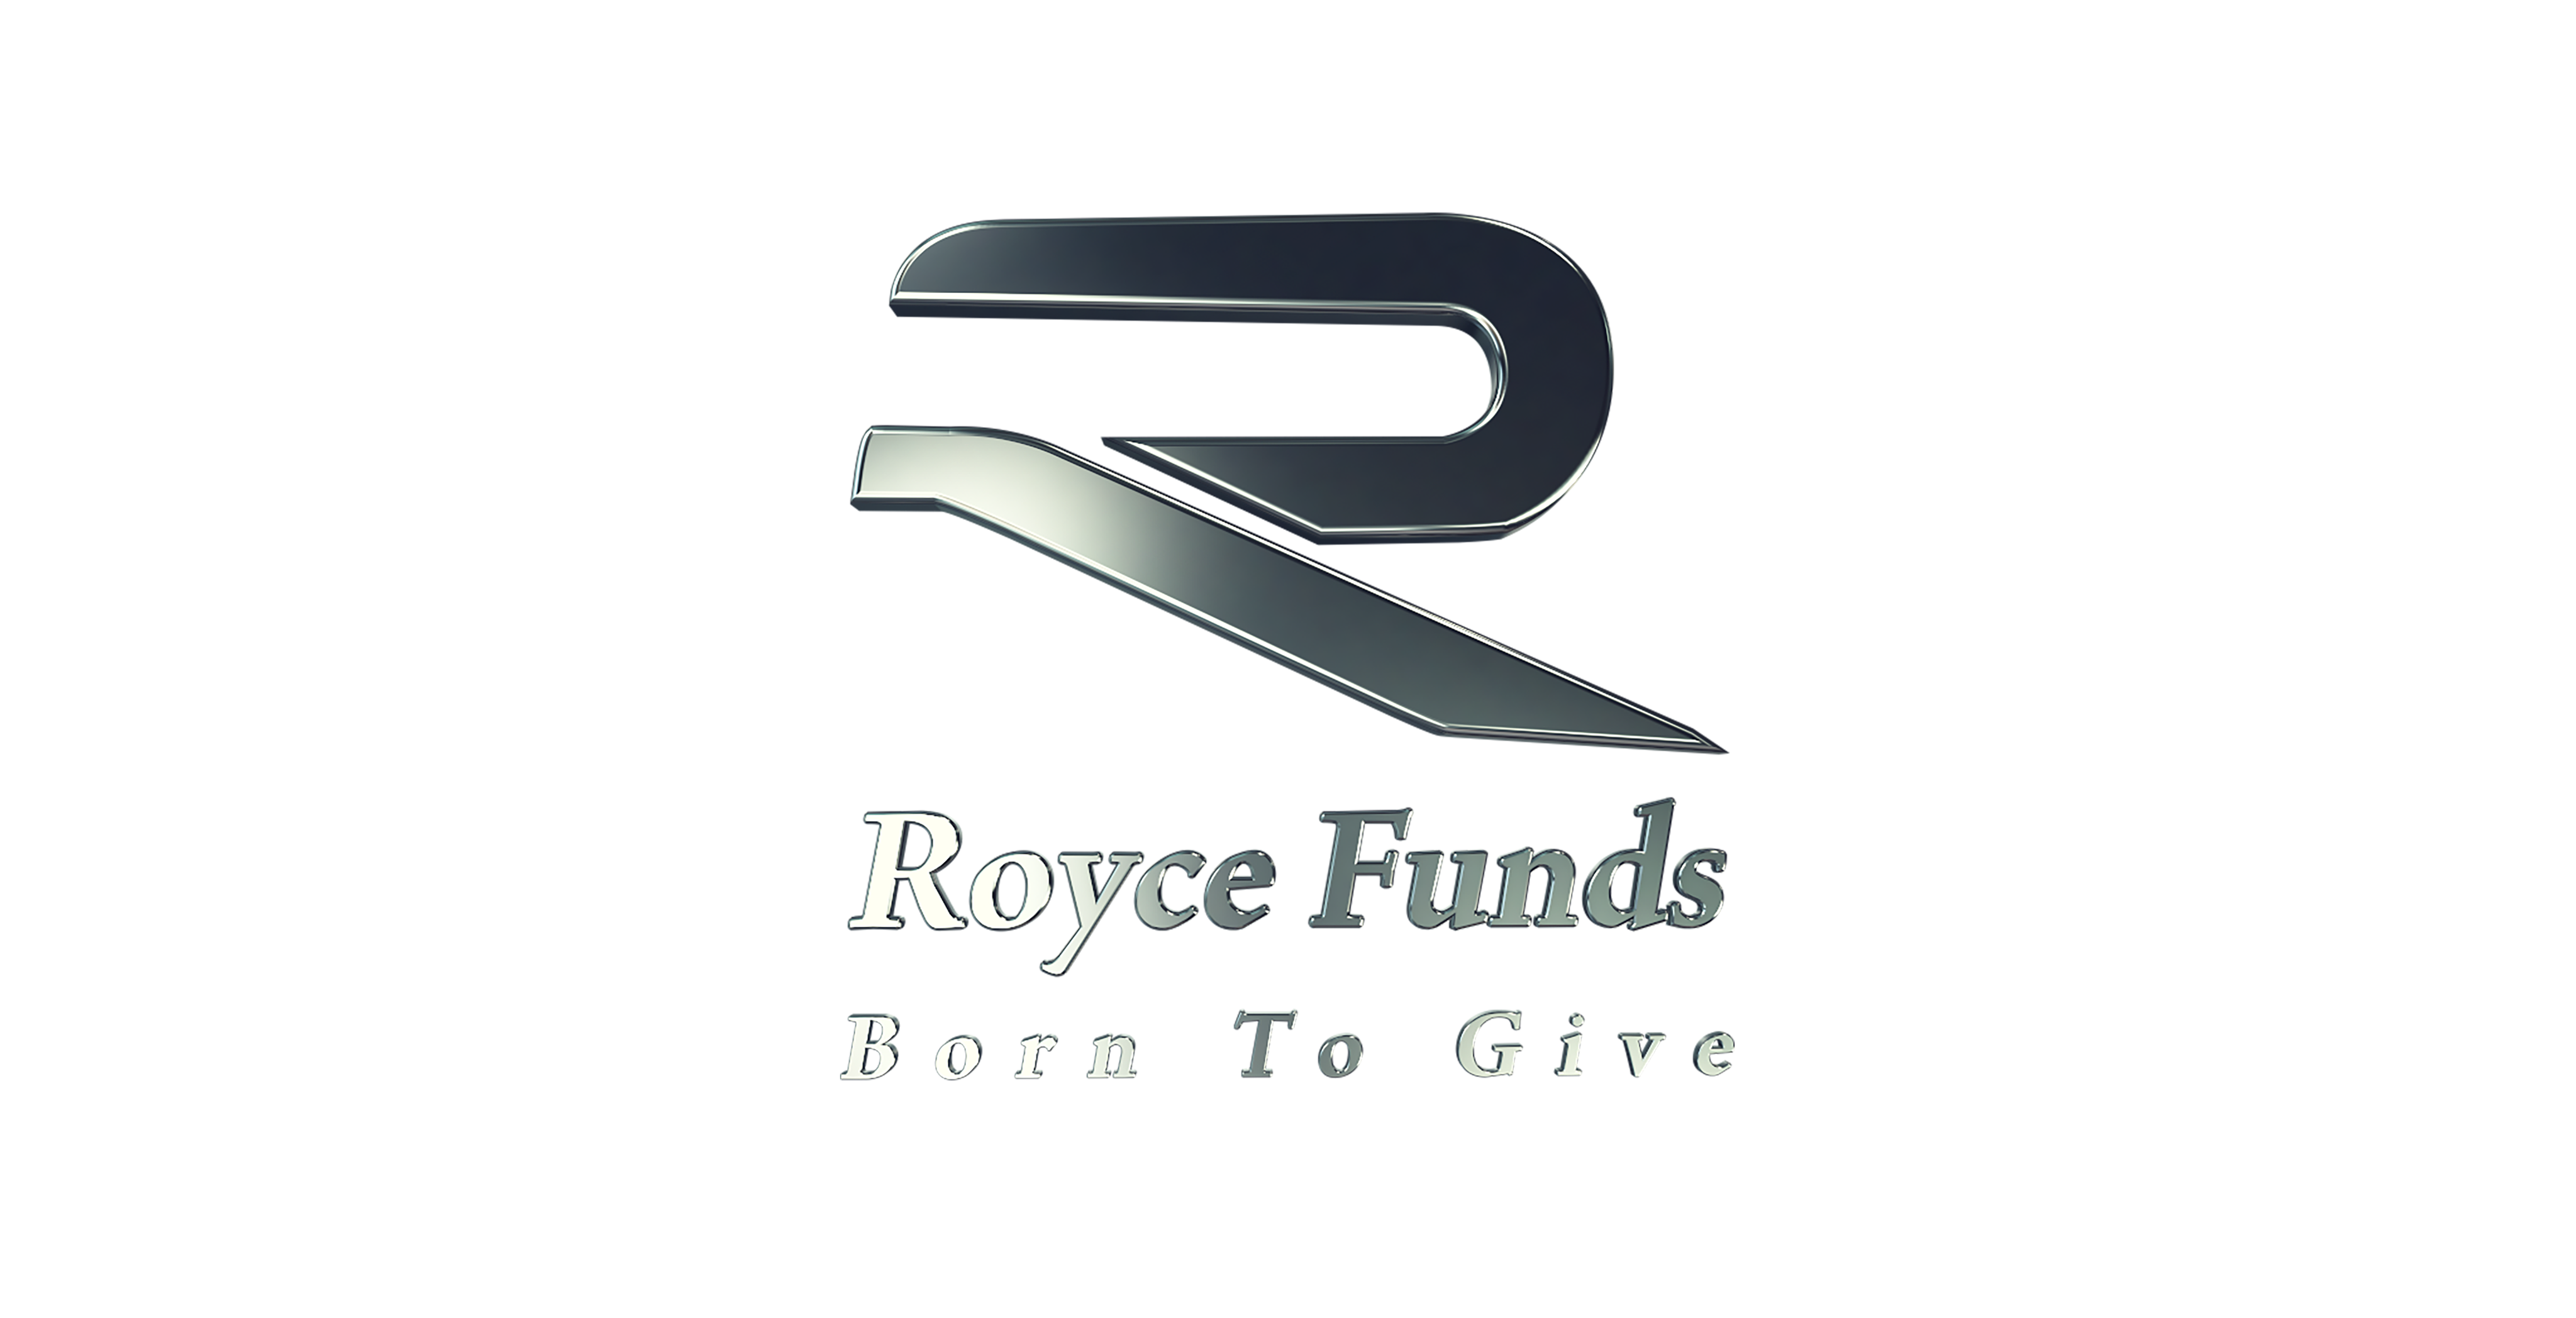 Royce Finance Limited Launches Smart Contract-Based Crowdfunding Platform